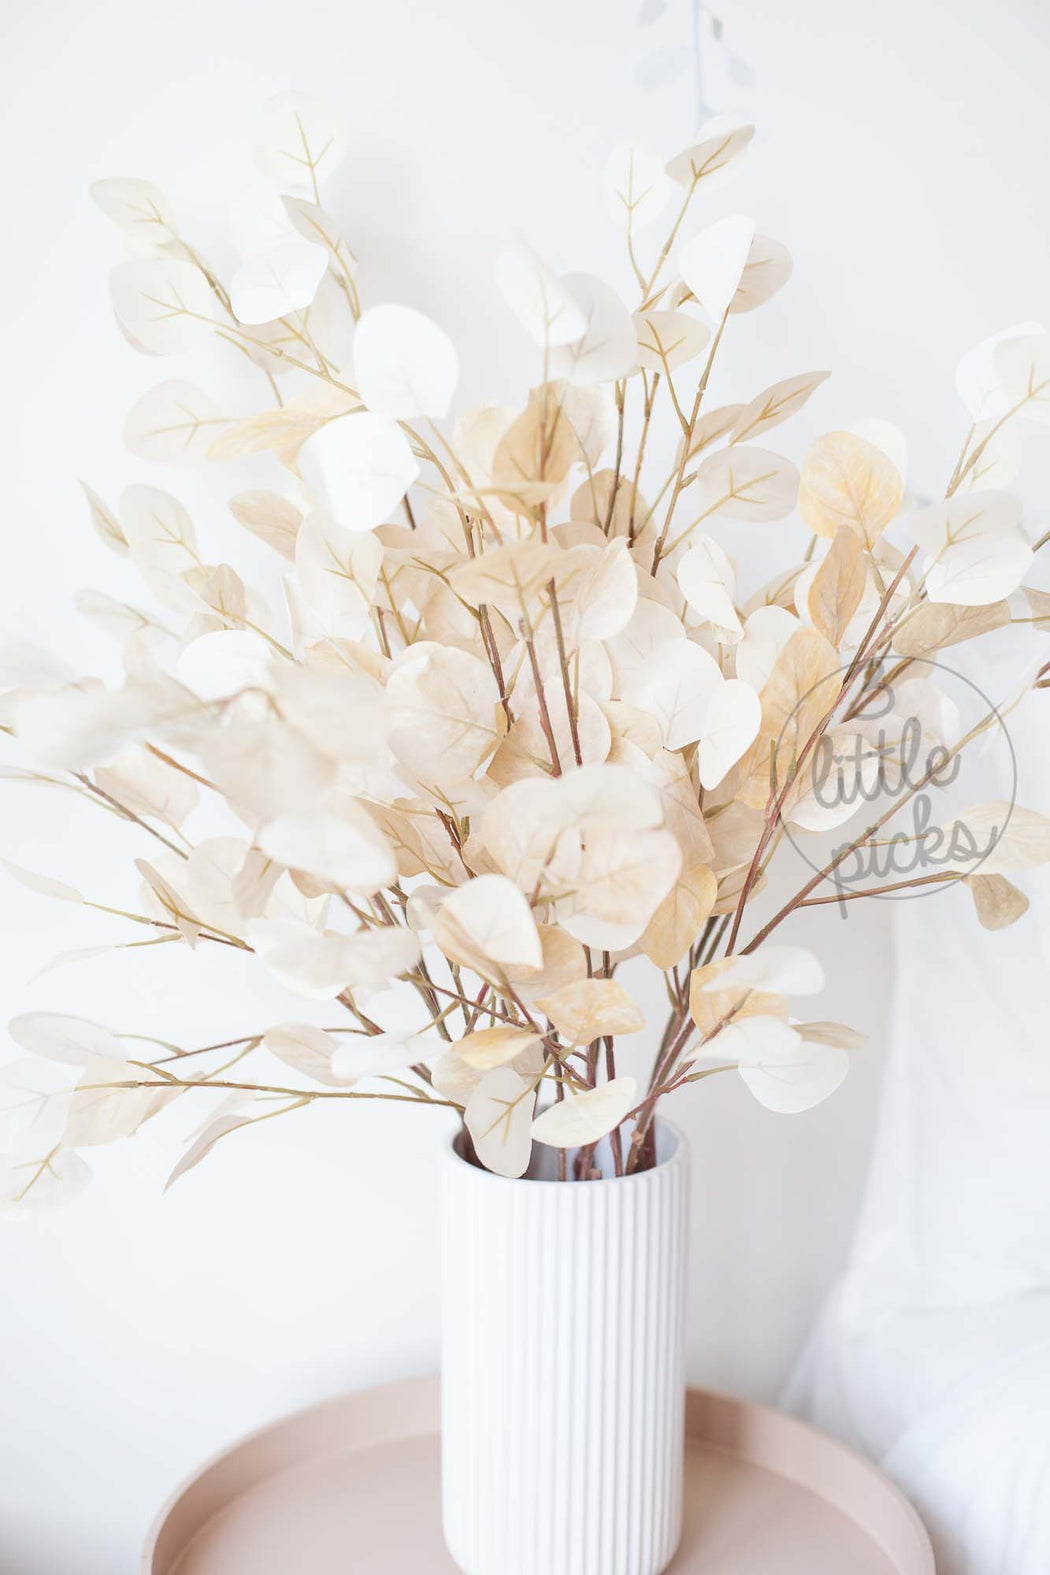 COMING BACK: Bleached Effect Eucalyptus Foliage Stems, Decor, 3littlepicks - 3LittlePicks